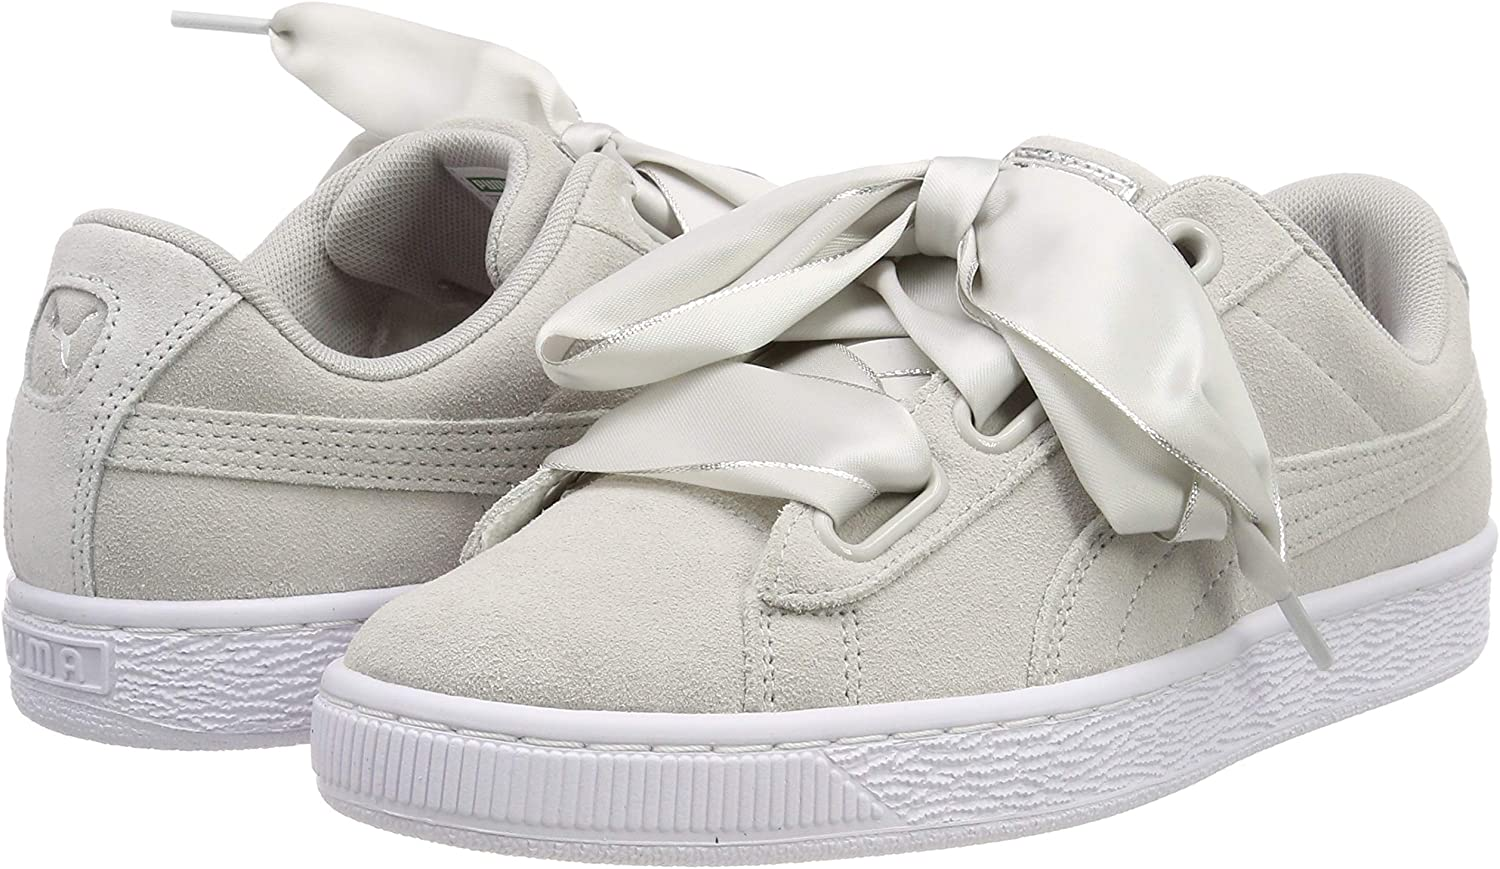 PUMA Suede Heart Galaxy Wn's, Sneakers Basses Femme